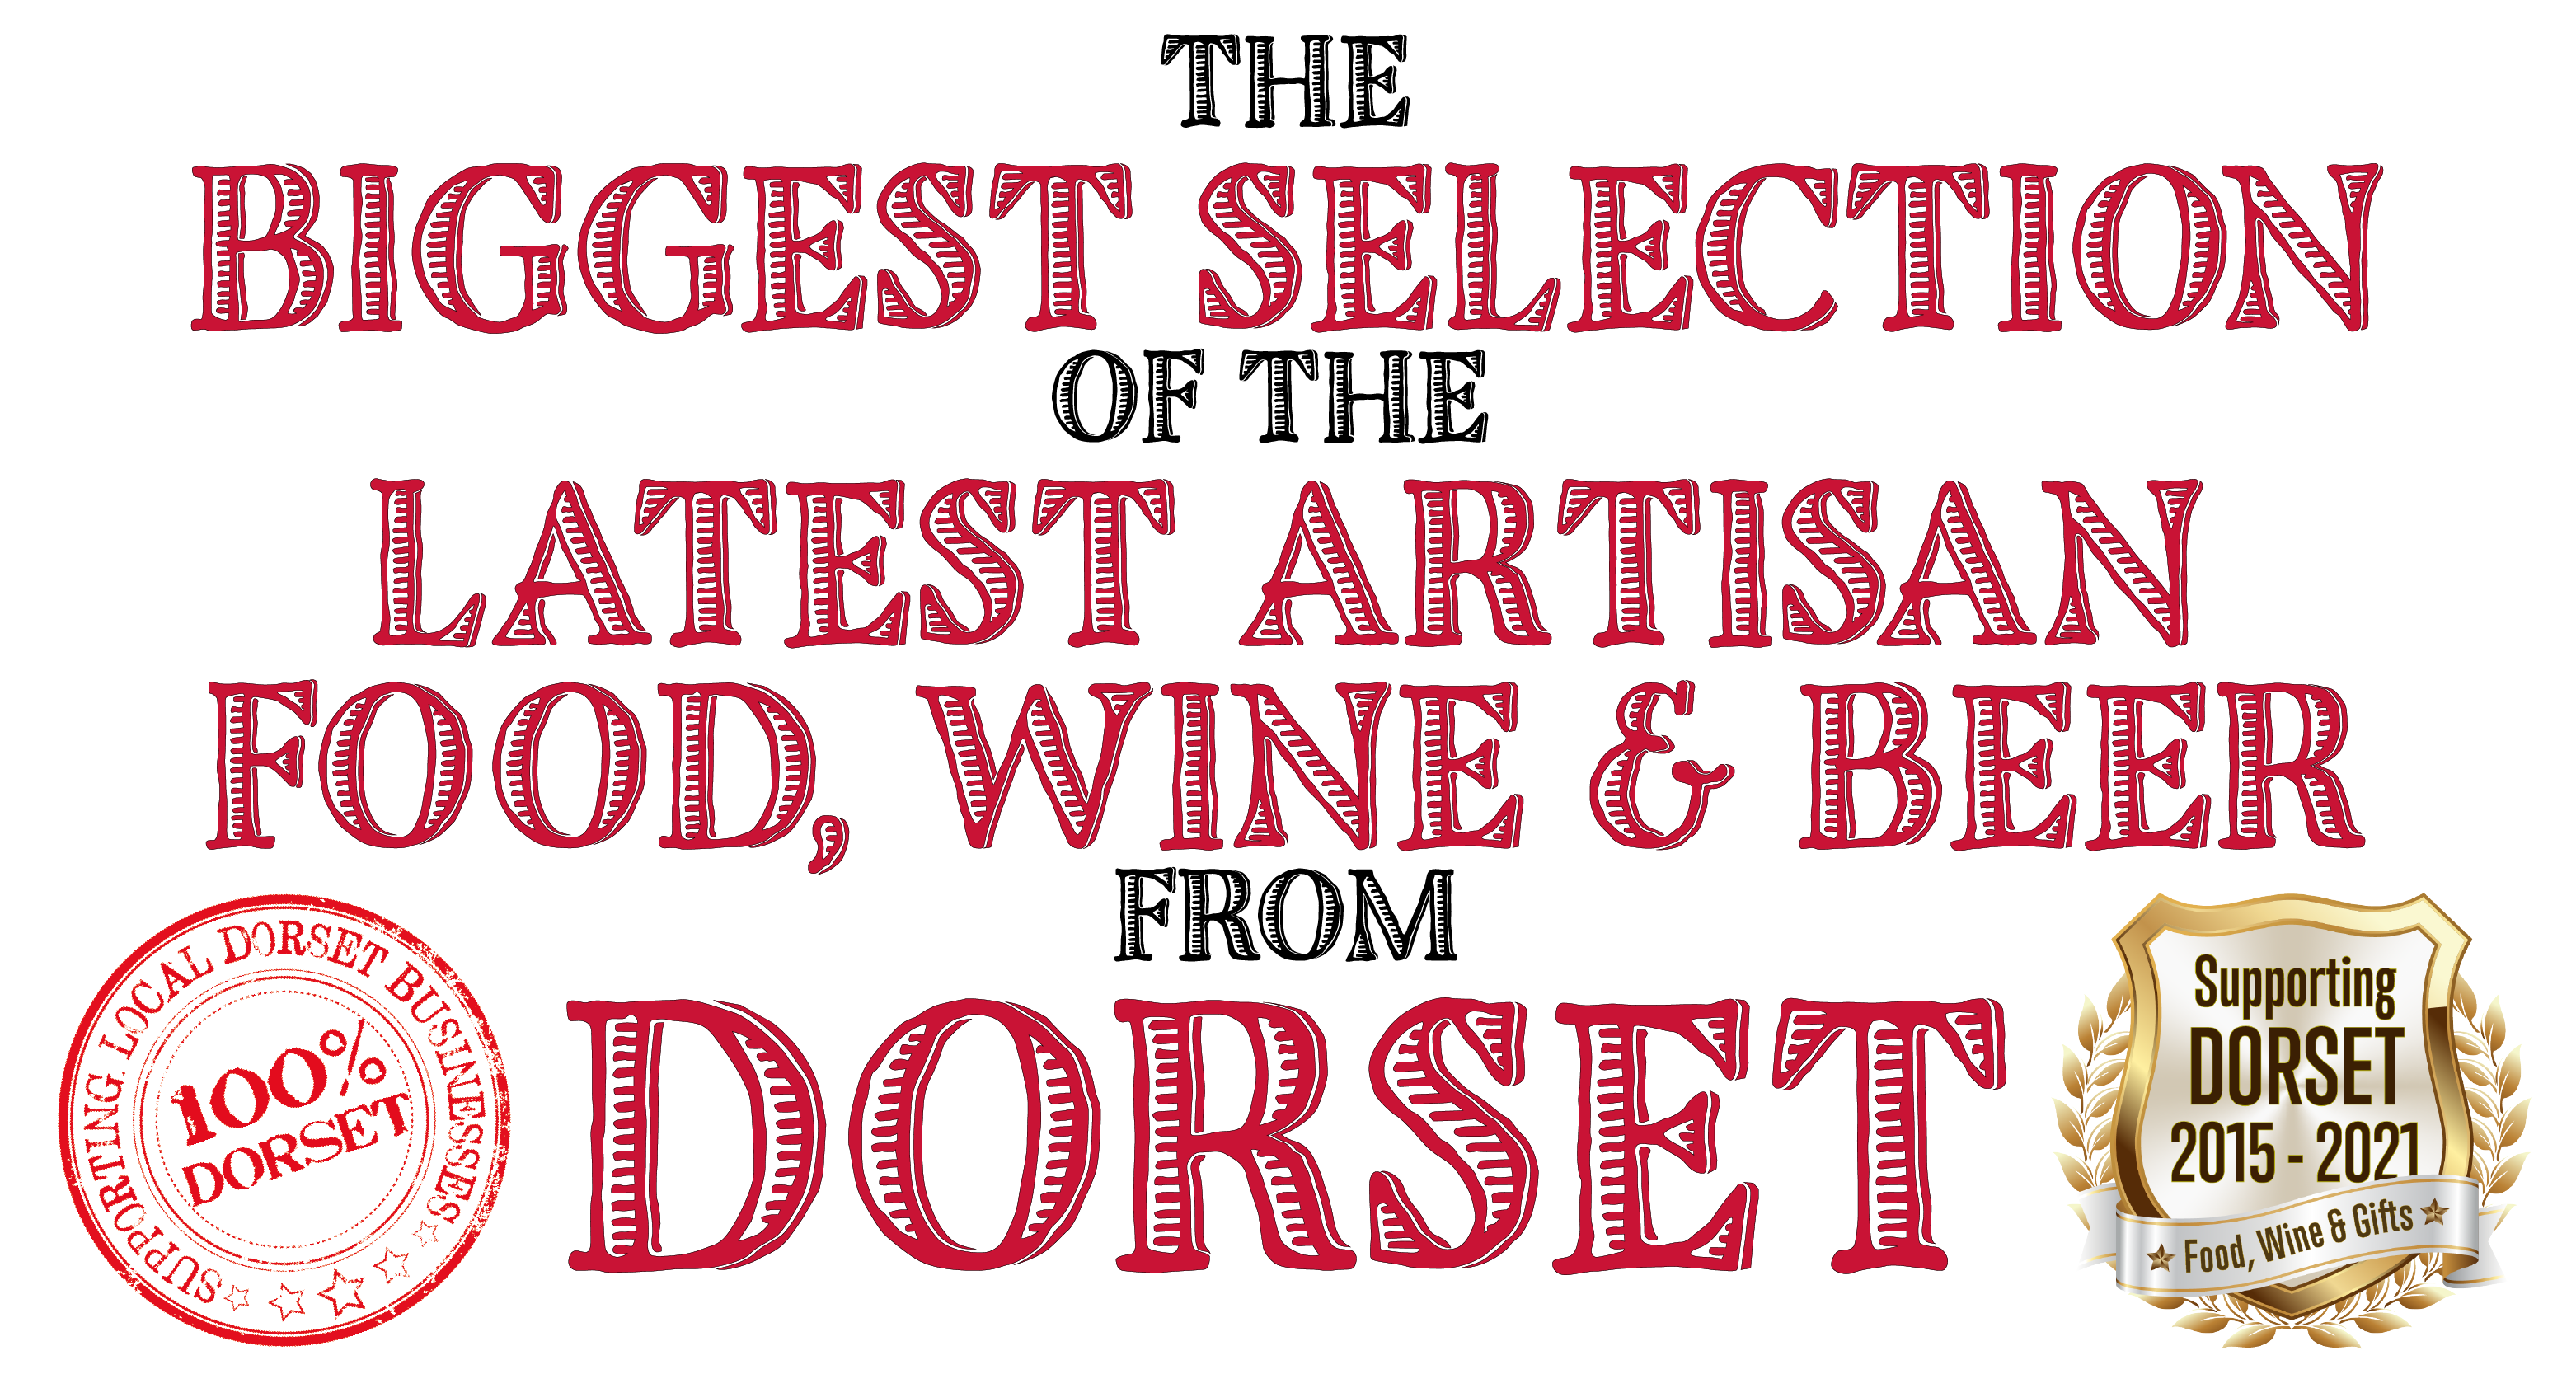 The Biggest and Latest Selection of Artisan Food, Wine, Beer, Cider and Cheese in Dorset